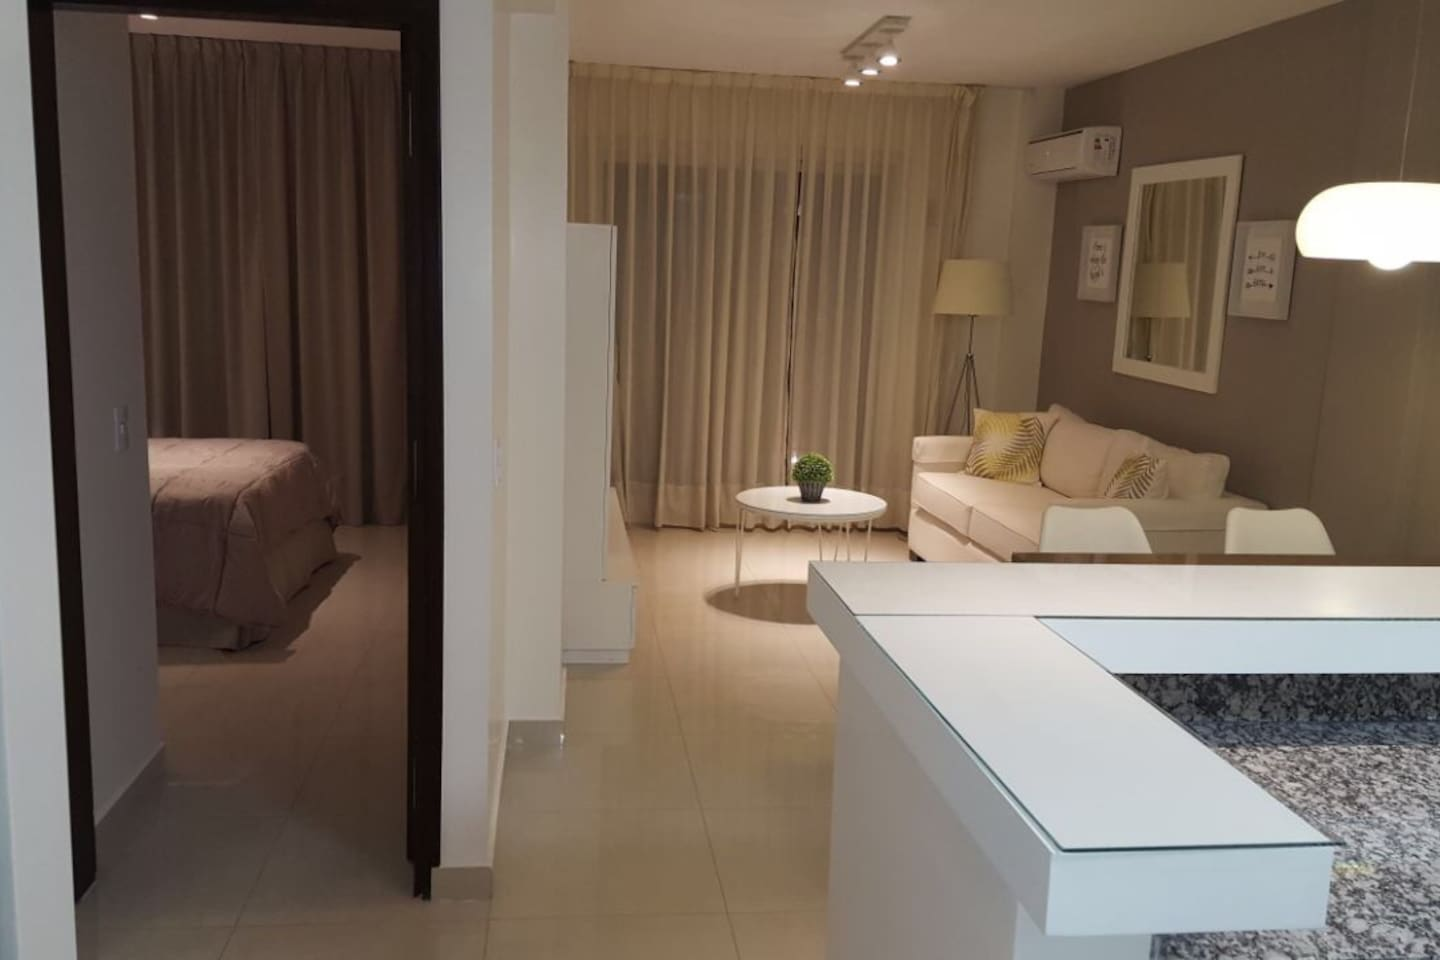 9 De Julio Park Suites Apartments For Rent In San Miguel De  # Muebles En Foz Do Iguacu